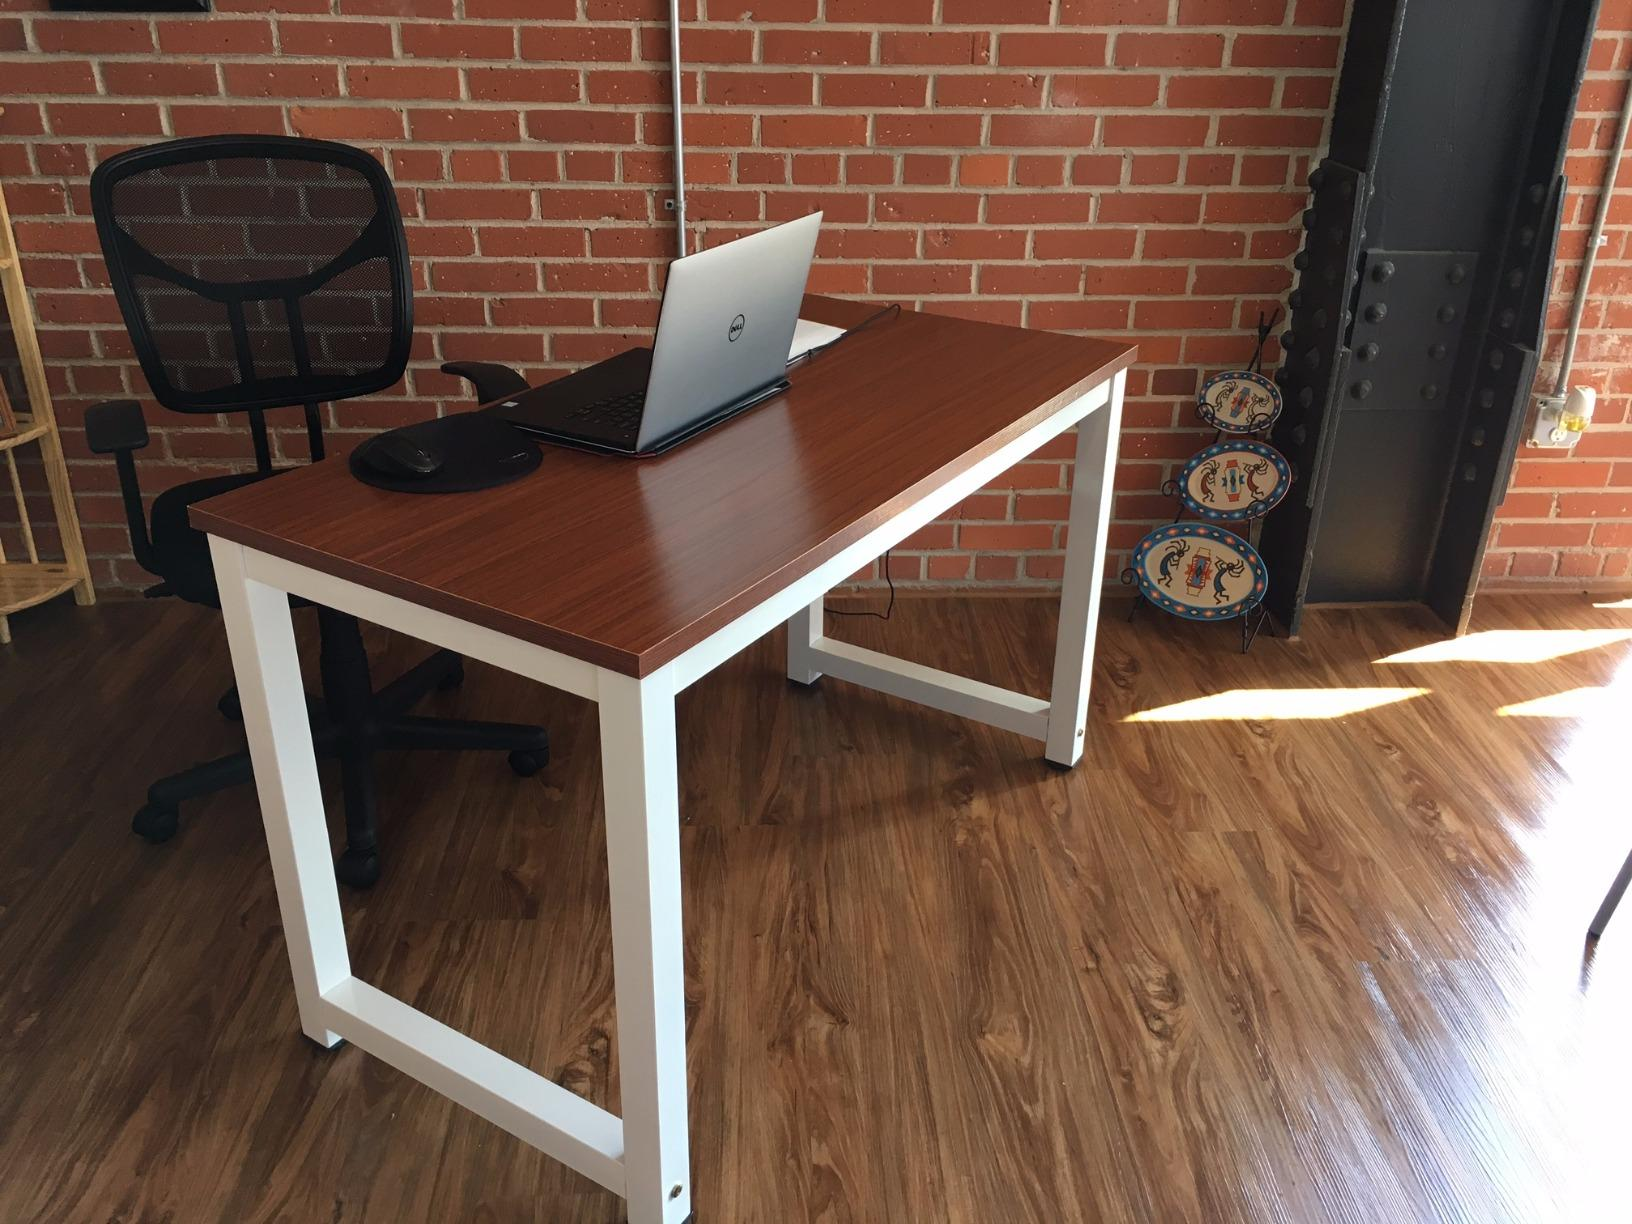 office desk & Review] 55 Inch Large Office Desk by Tribesigns \u2013 Mansion Like